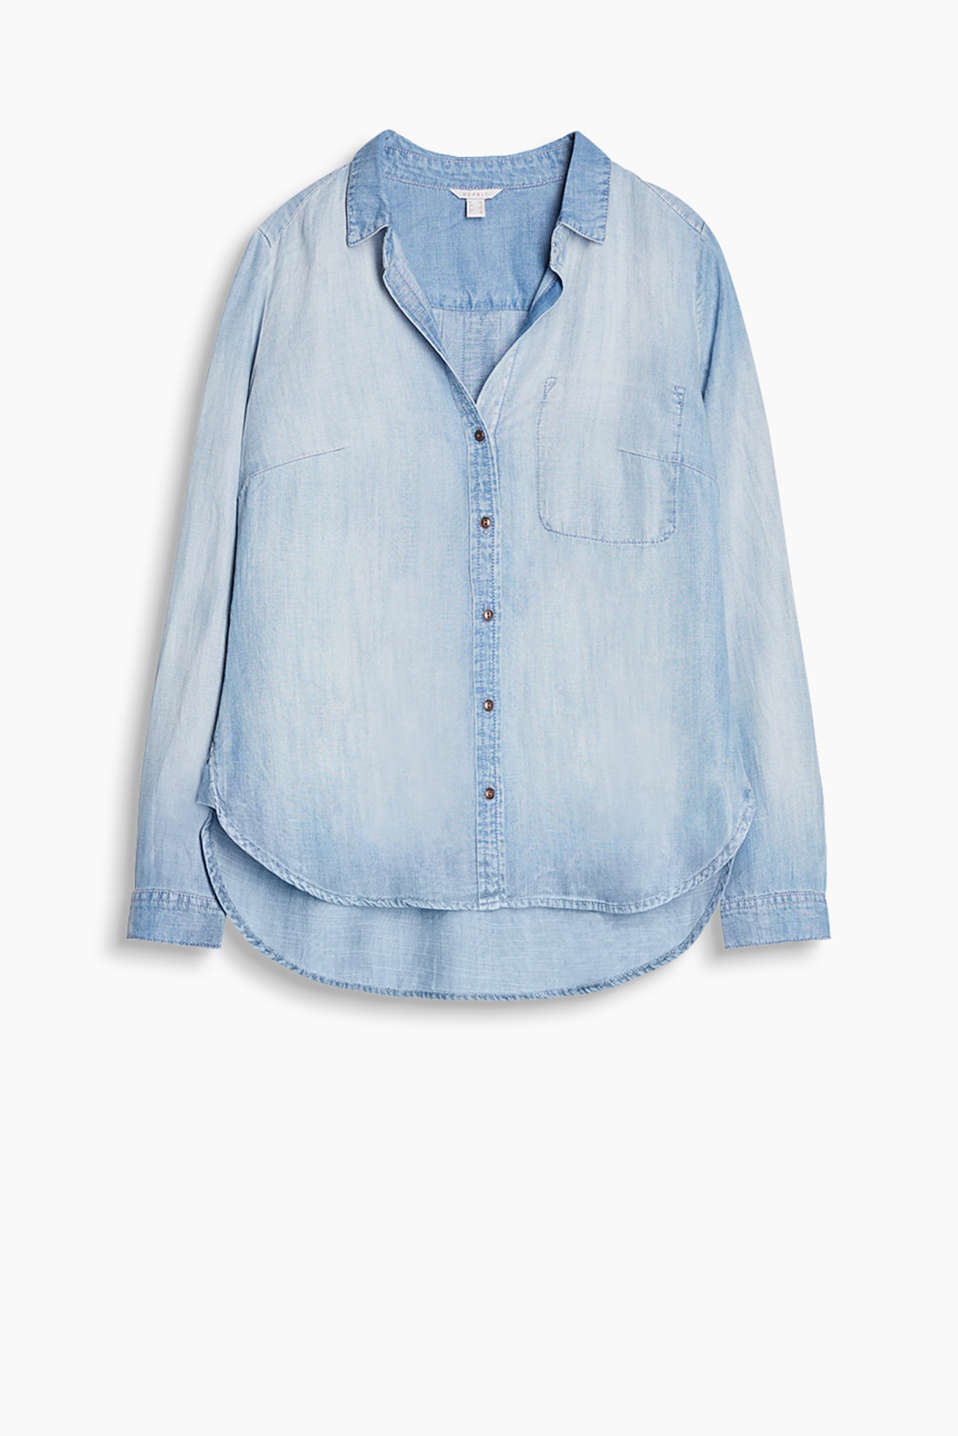 Fließende Bluse in verwaschenem Denim-Look